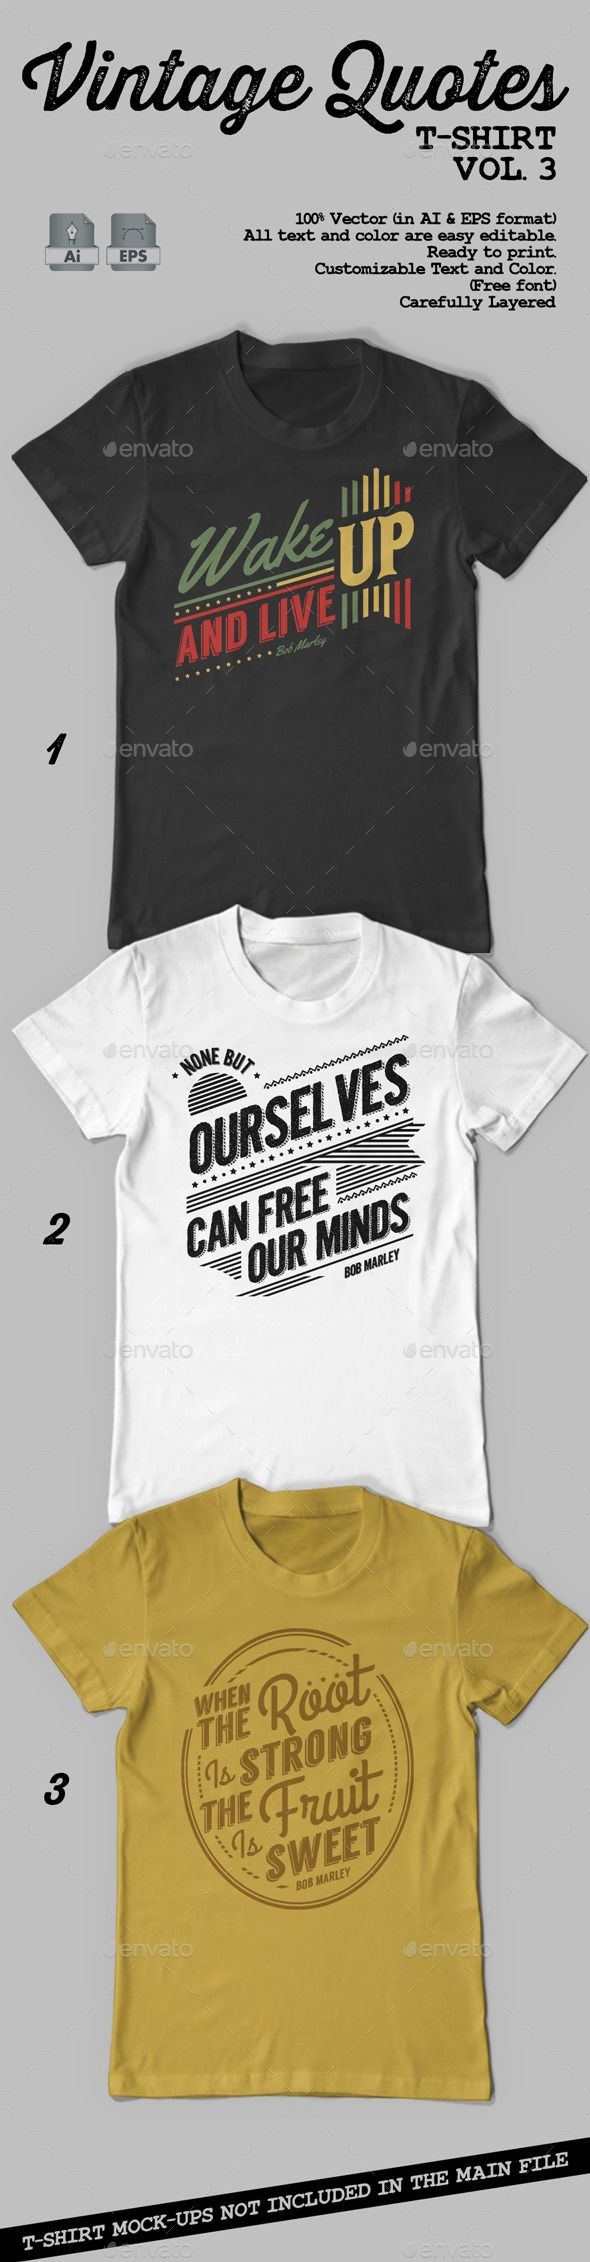 Vintage Quotes T-Shirt Vol. 3